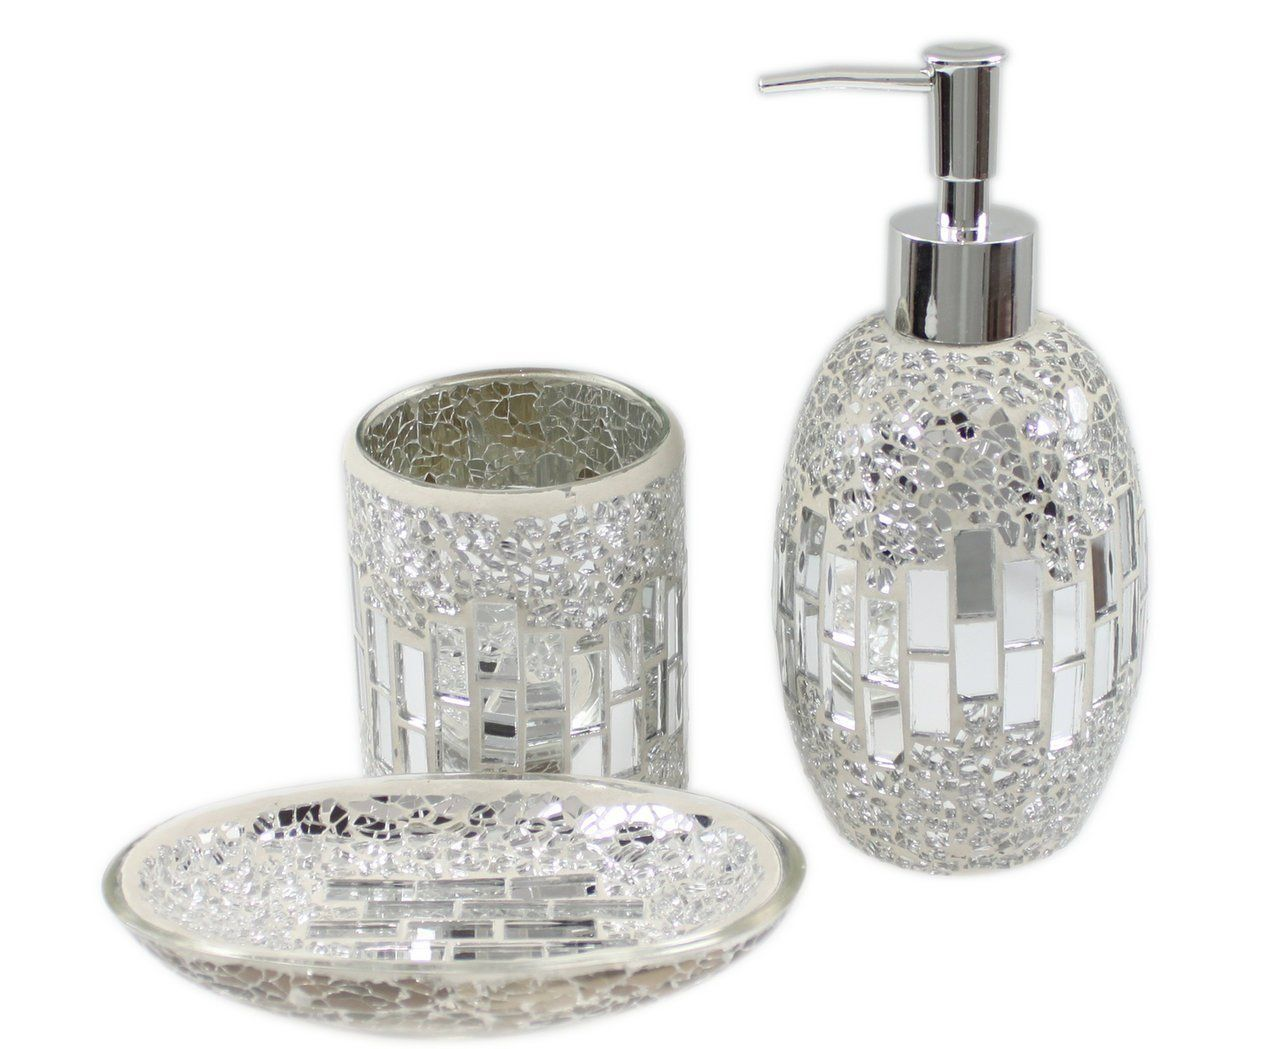 Charmant 3 Piece Modern Silver Chrome Sparkle Mosaic Glass Tile Bathroom Accessory  Set: Amazon.co